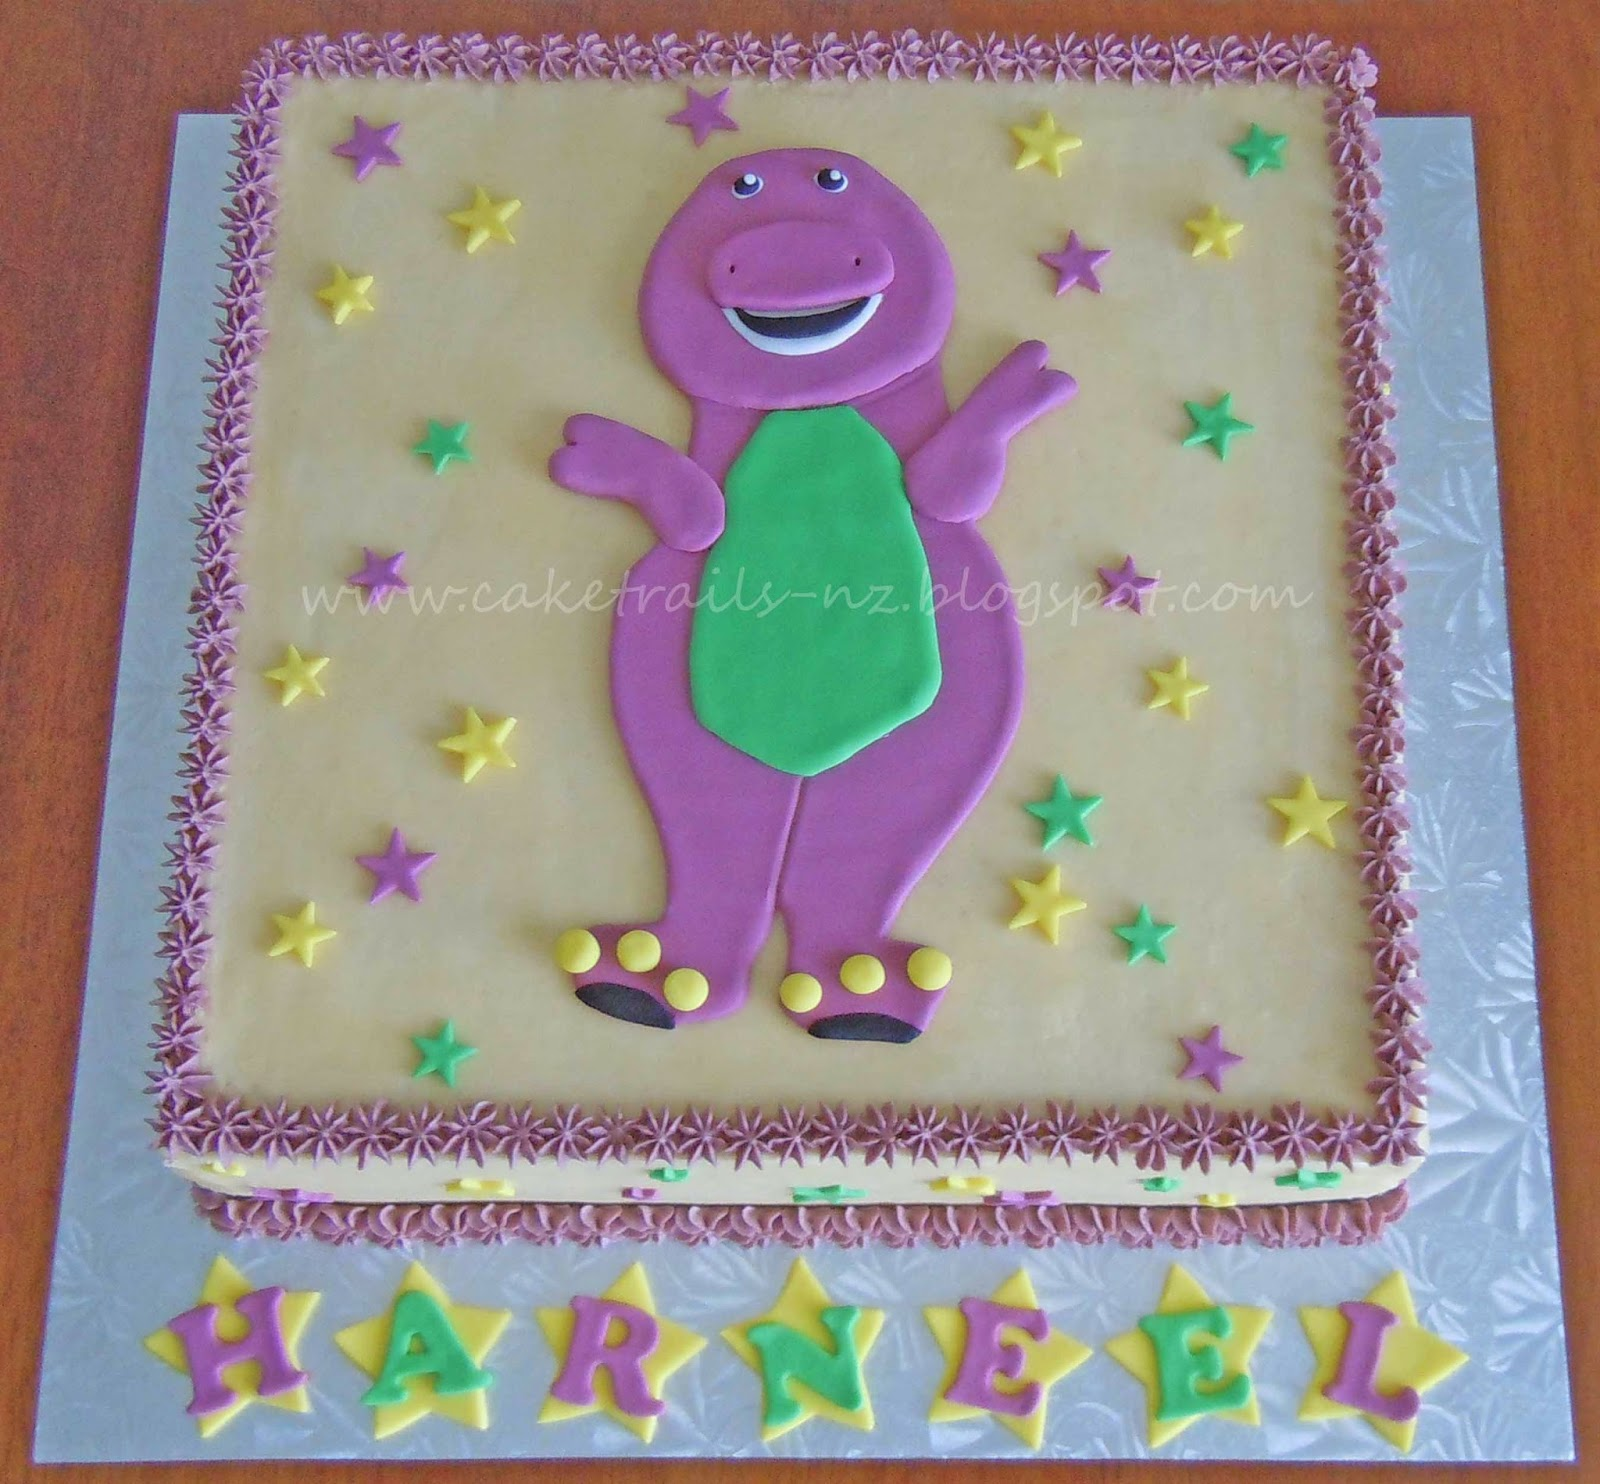 How To Make A Simple Barney Cake